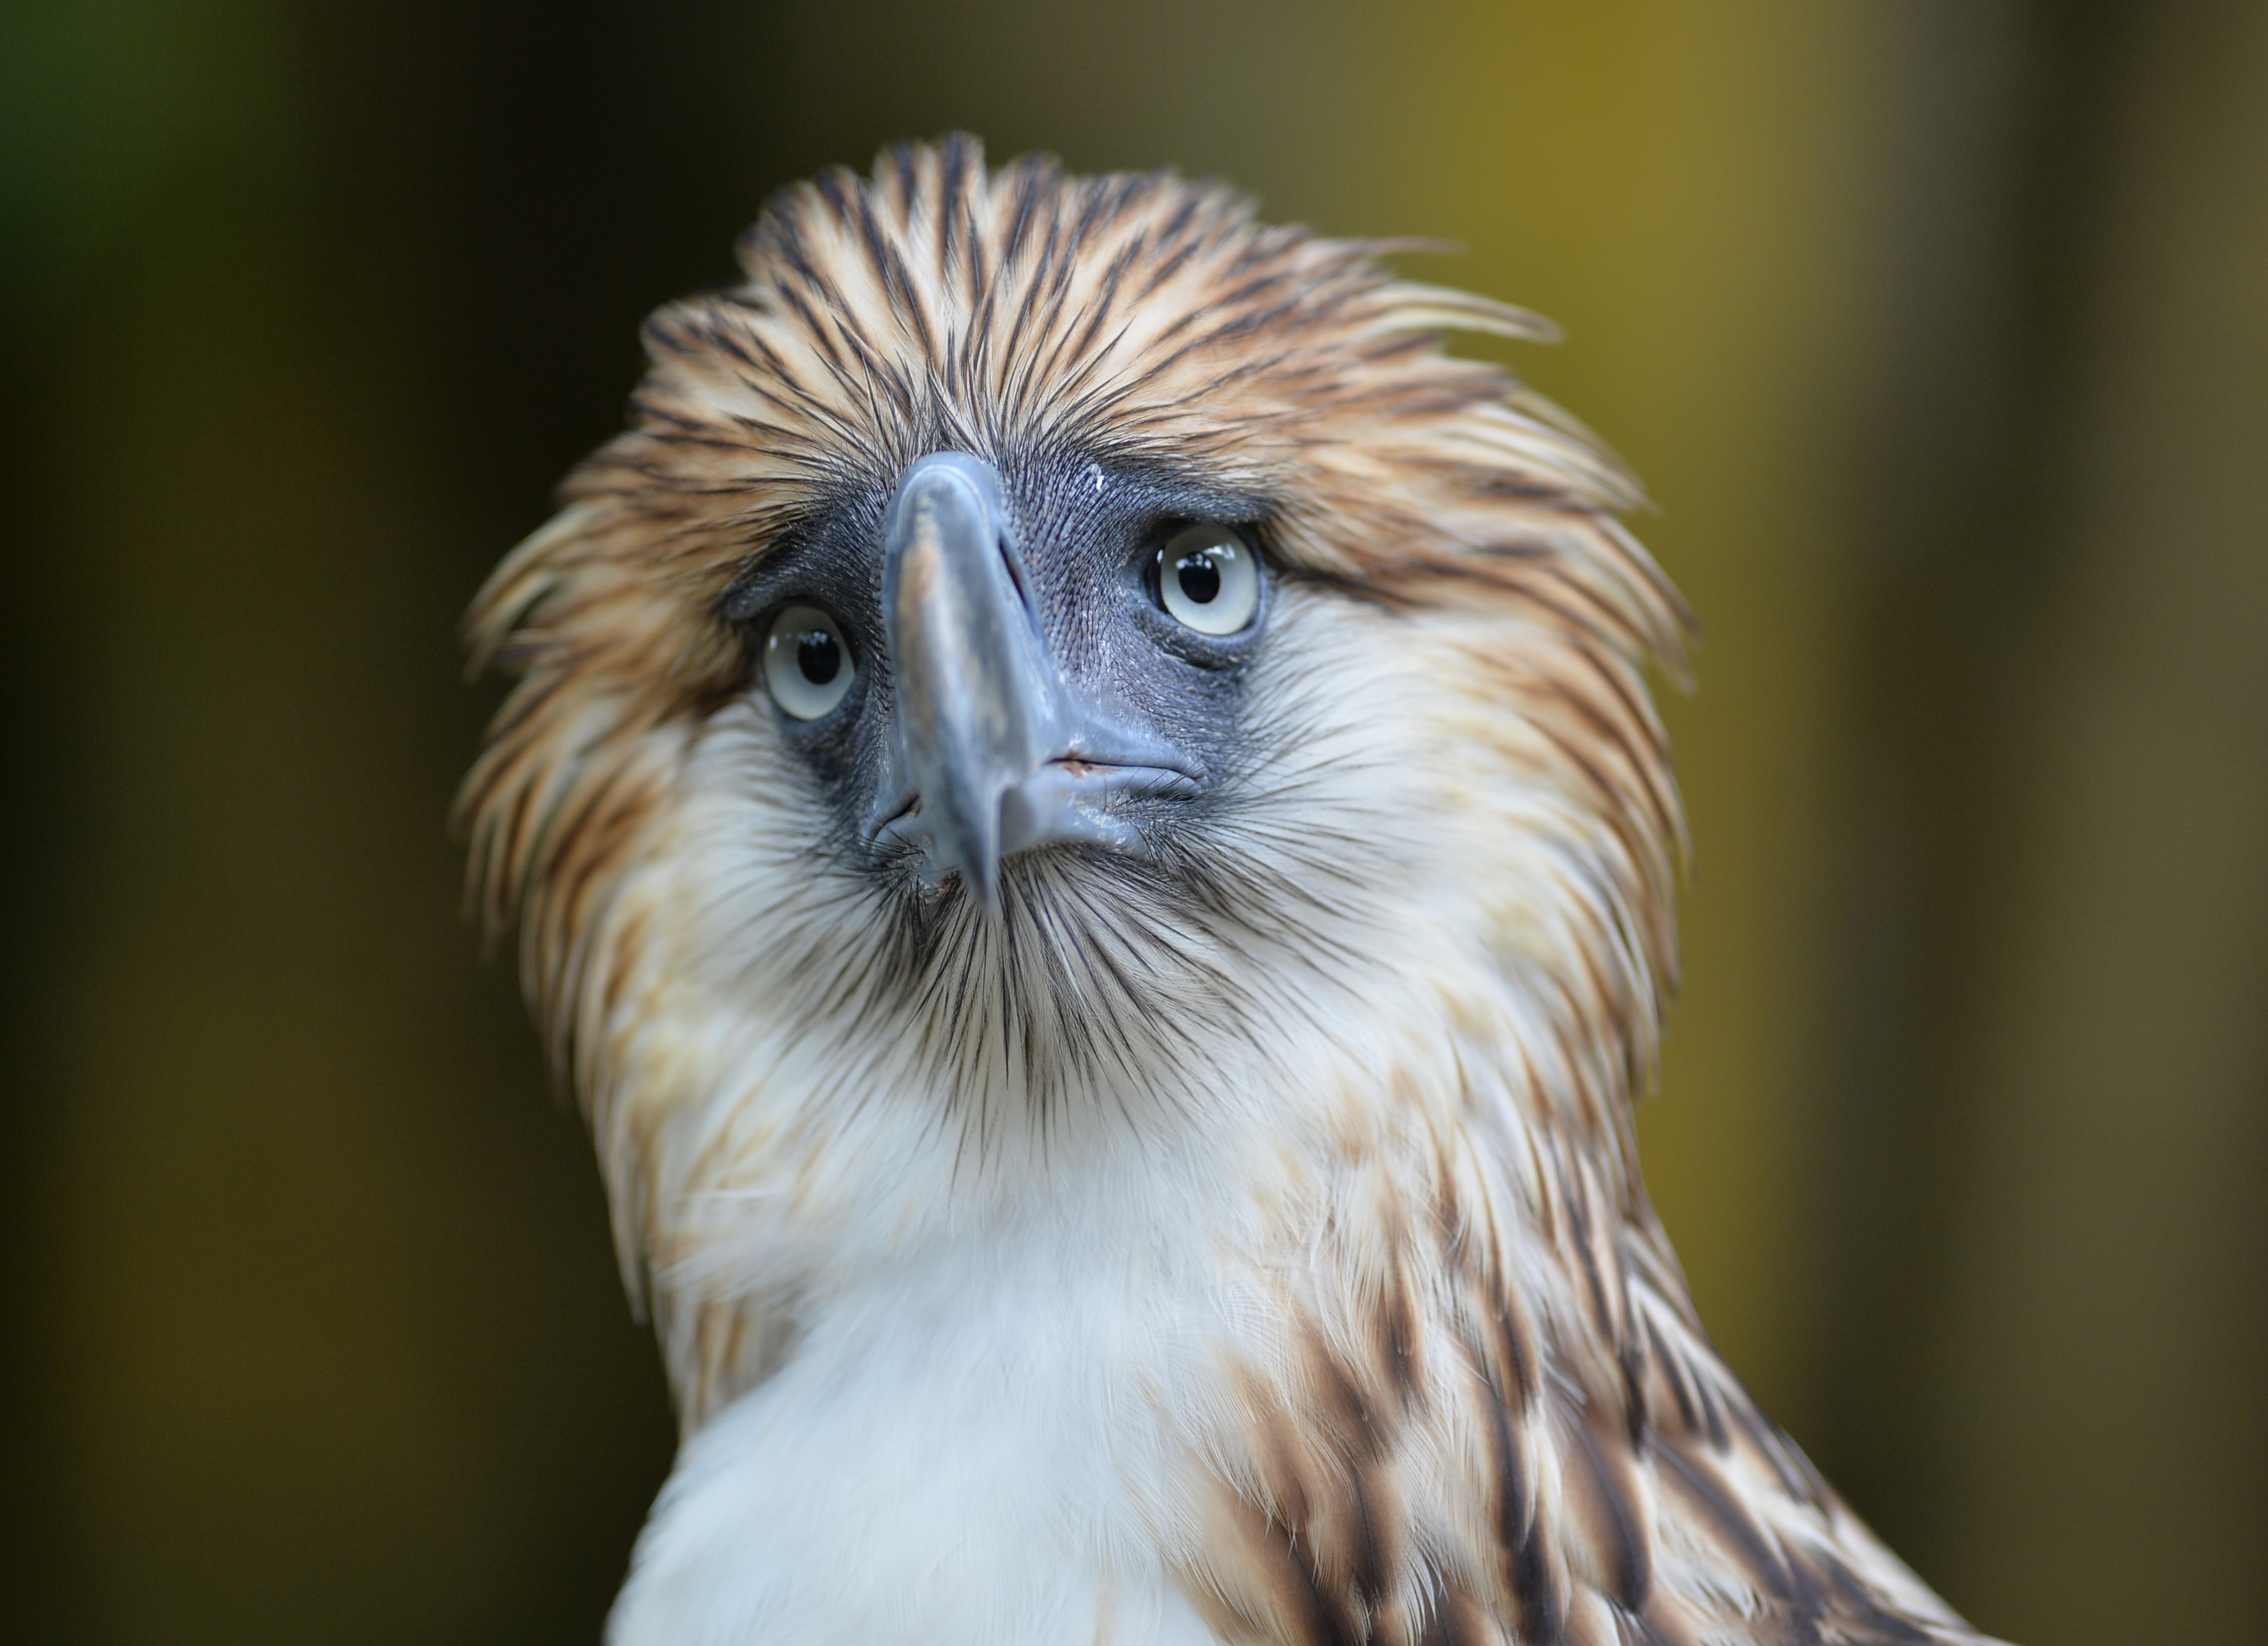 Philippine Eagle Center Southern Mindanao, Sanctuary offers hope for endangered Philippine eagle